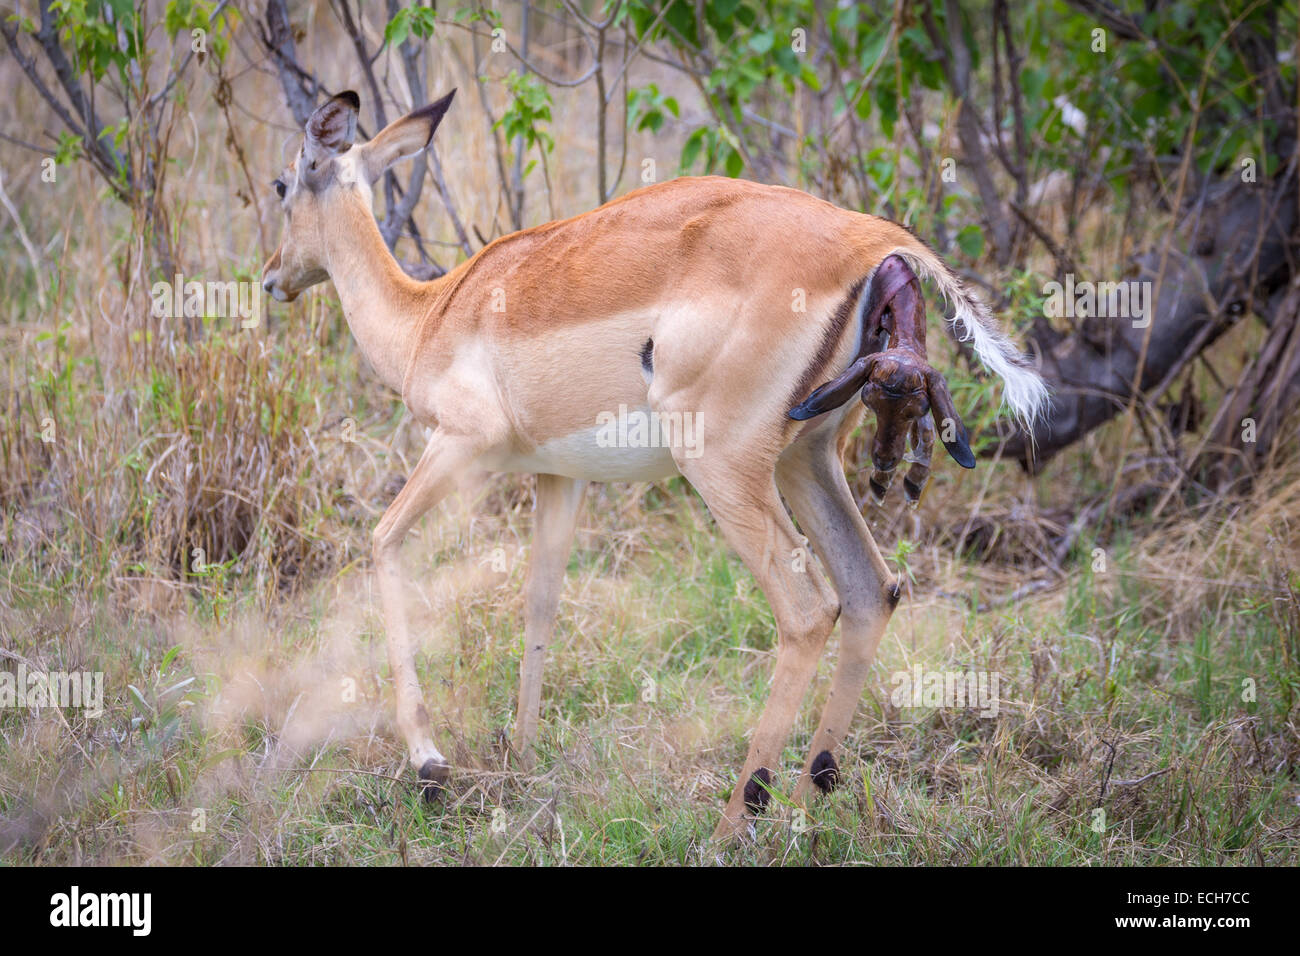 Impala (Aepyceros melampus) female at birth, head and front legs of the newborn protruding from the standing female - Stock Image